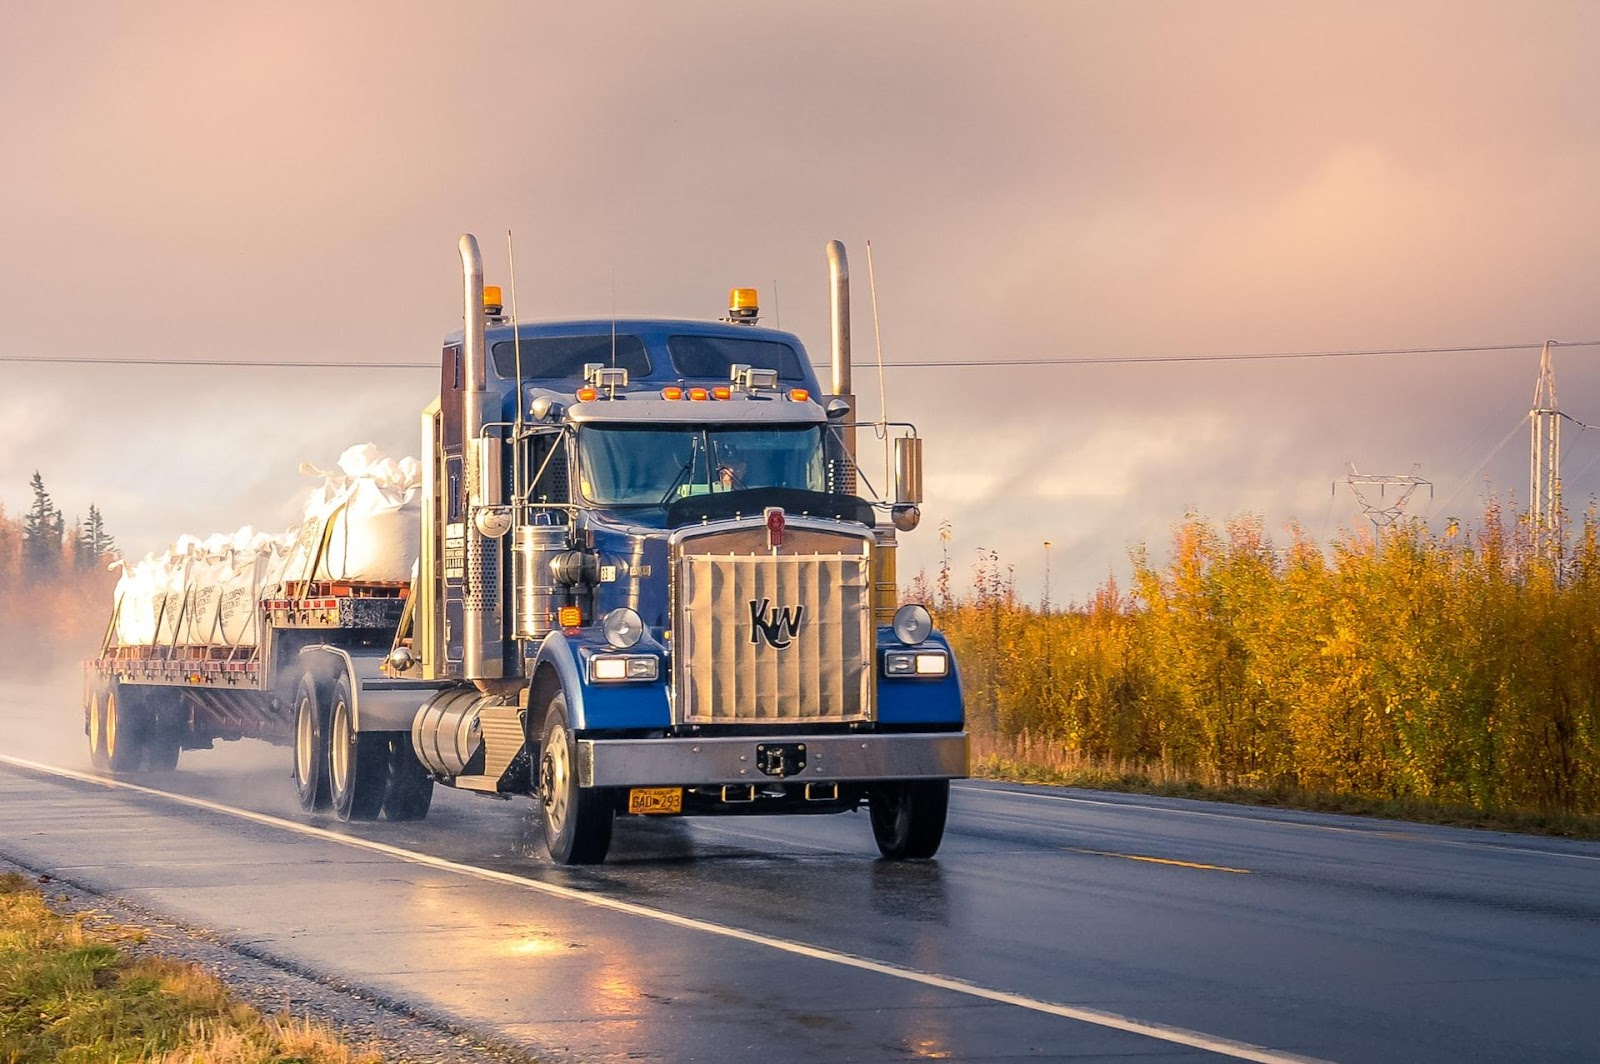 A picture containing sky, road, outdoor, truck  Description automatically generated